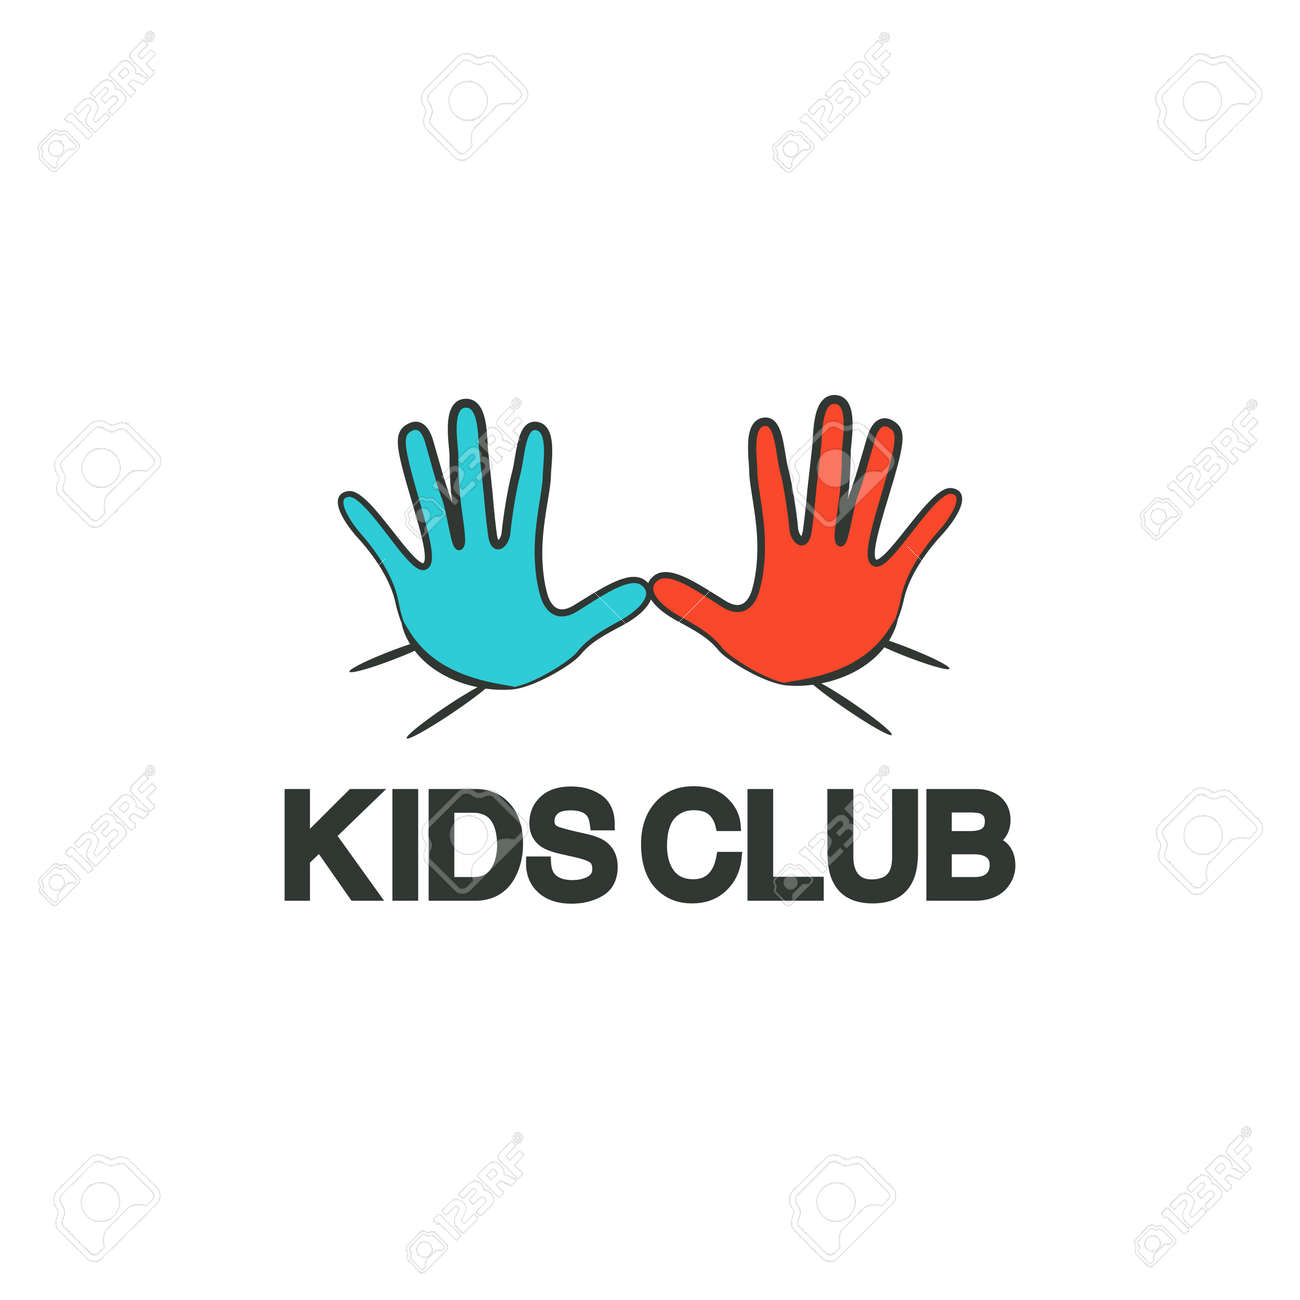 Kids Club Logo Template On White Background Royalty Free Cliparts